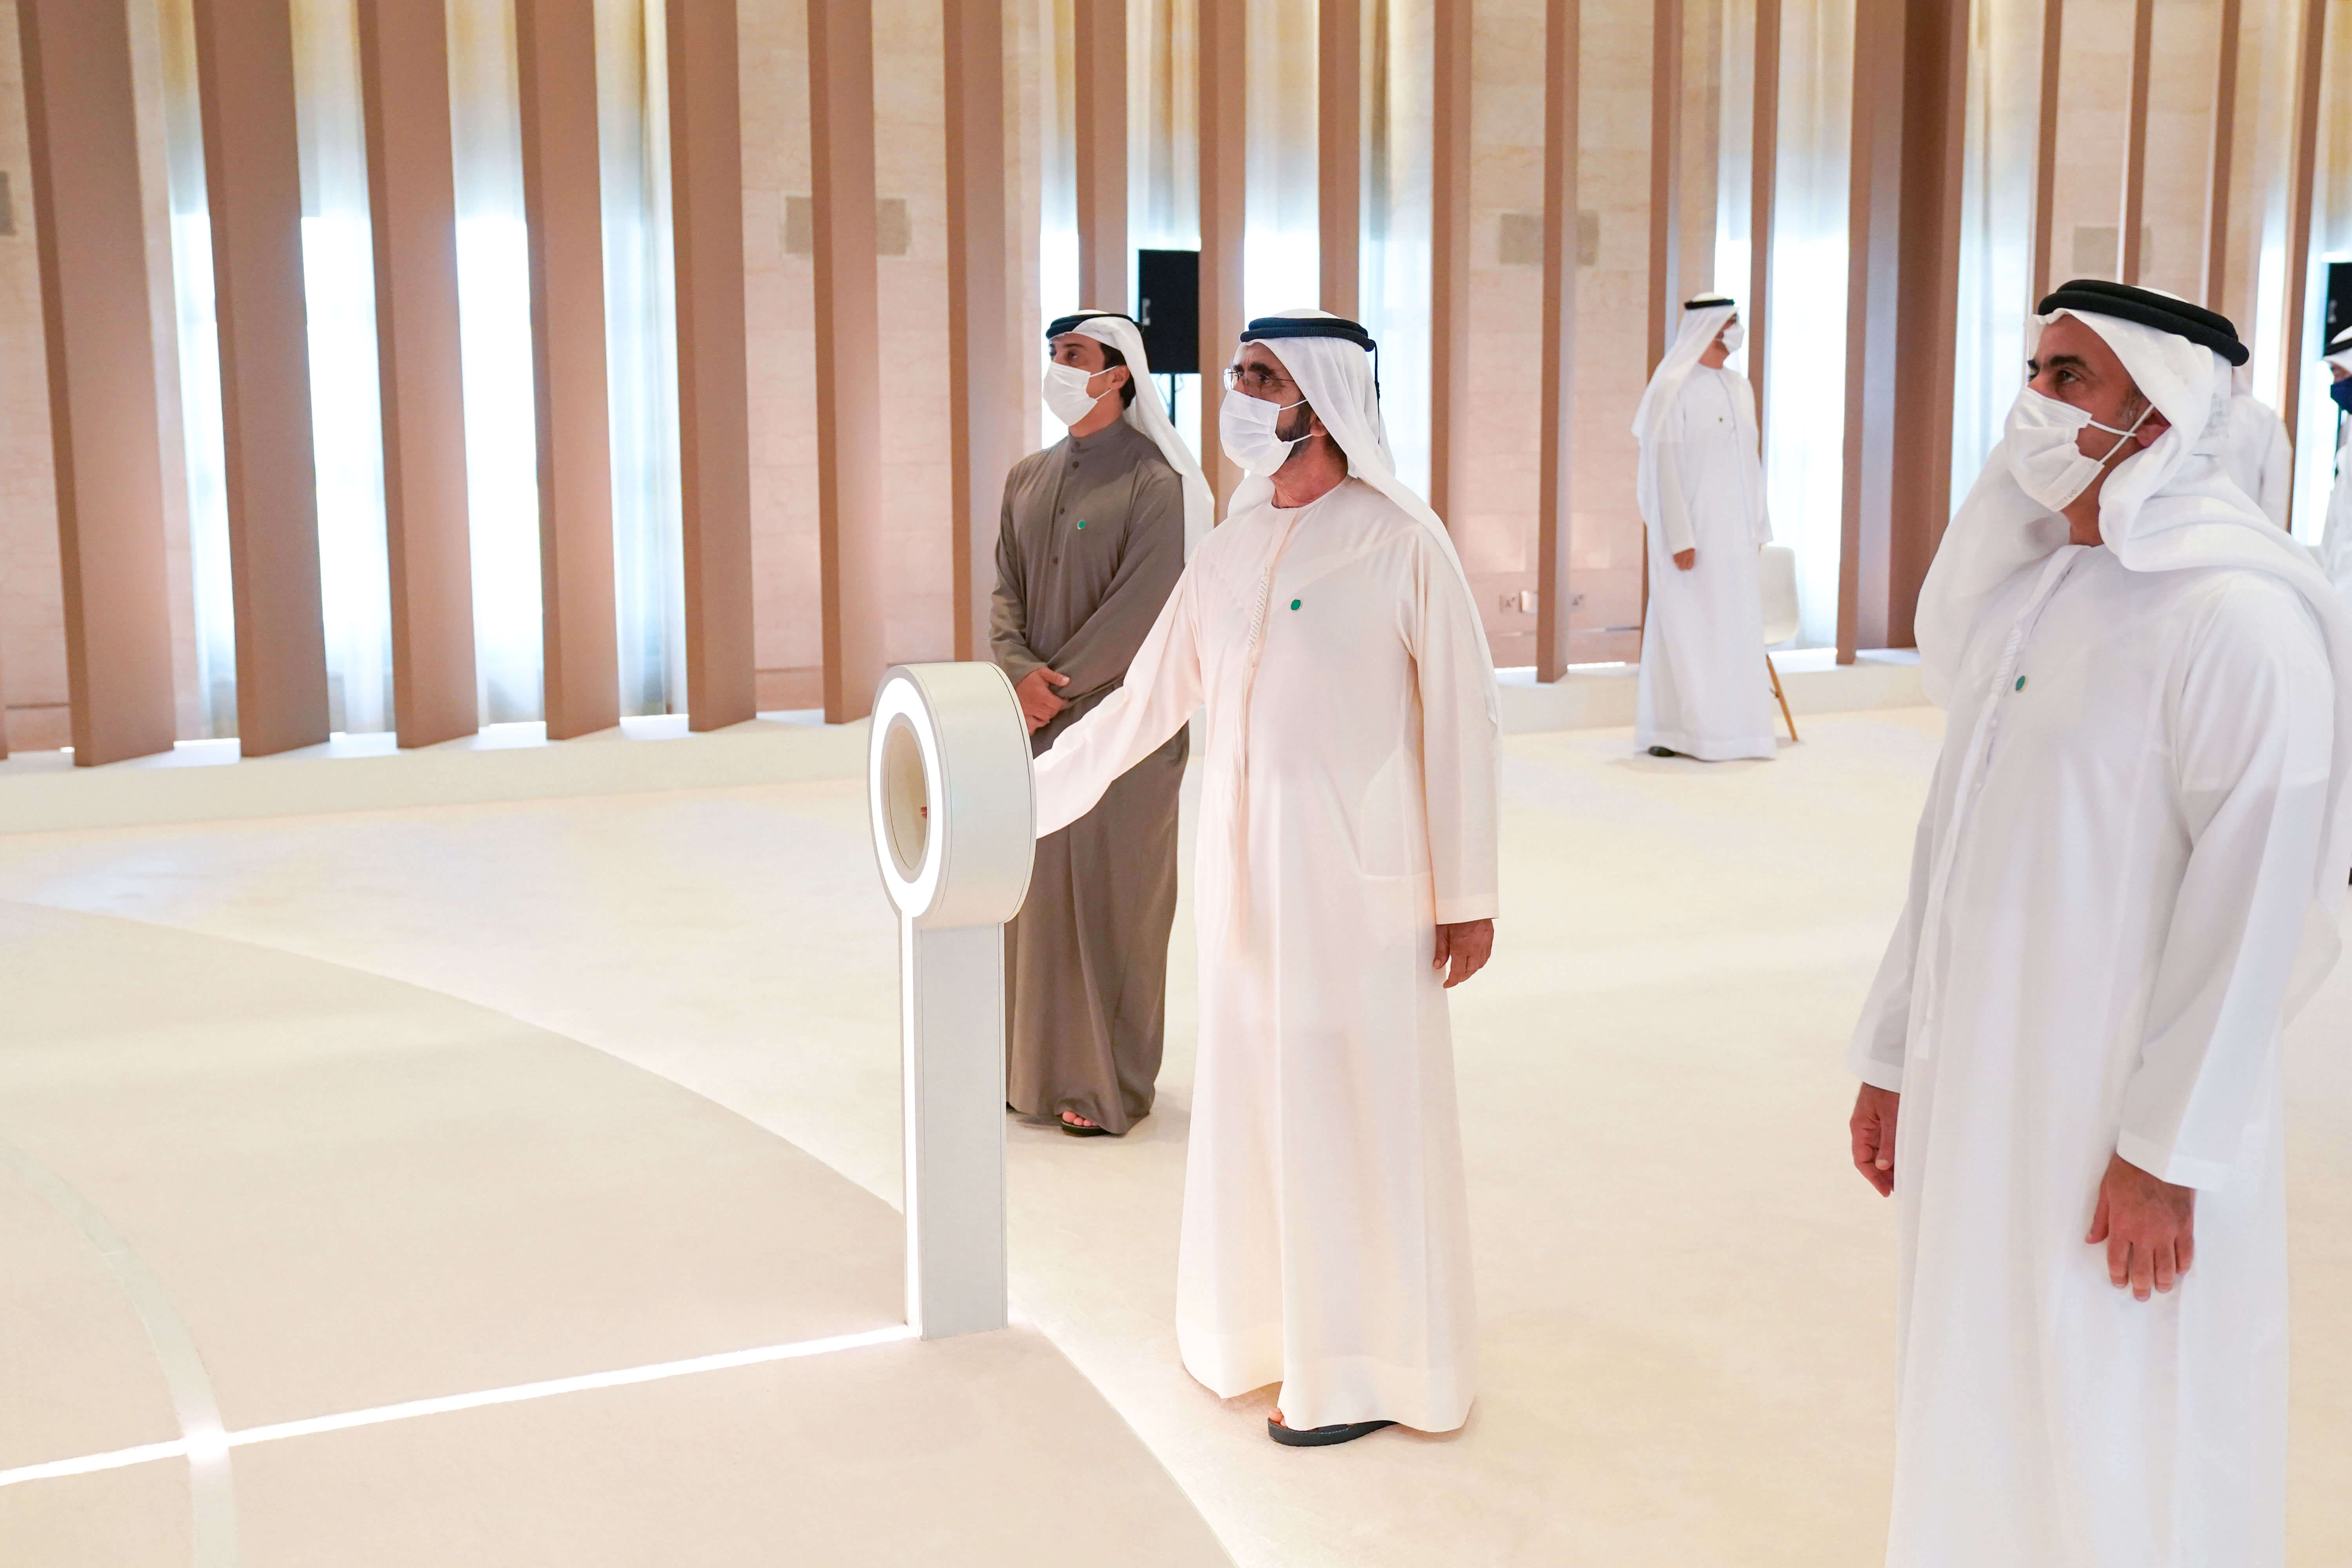 sheikh-mohammed-bin-rashid-launches-operation-300bn-to-advance-the-uae-industrial-sector